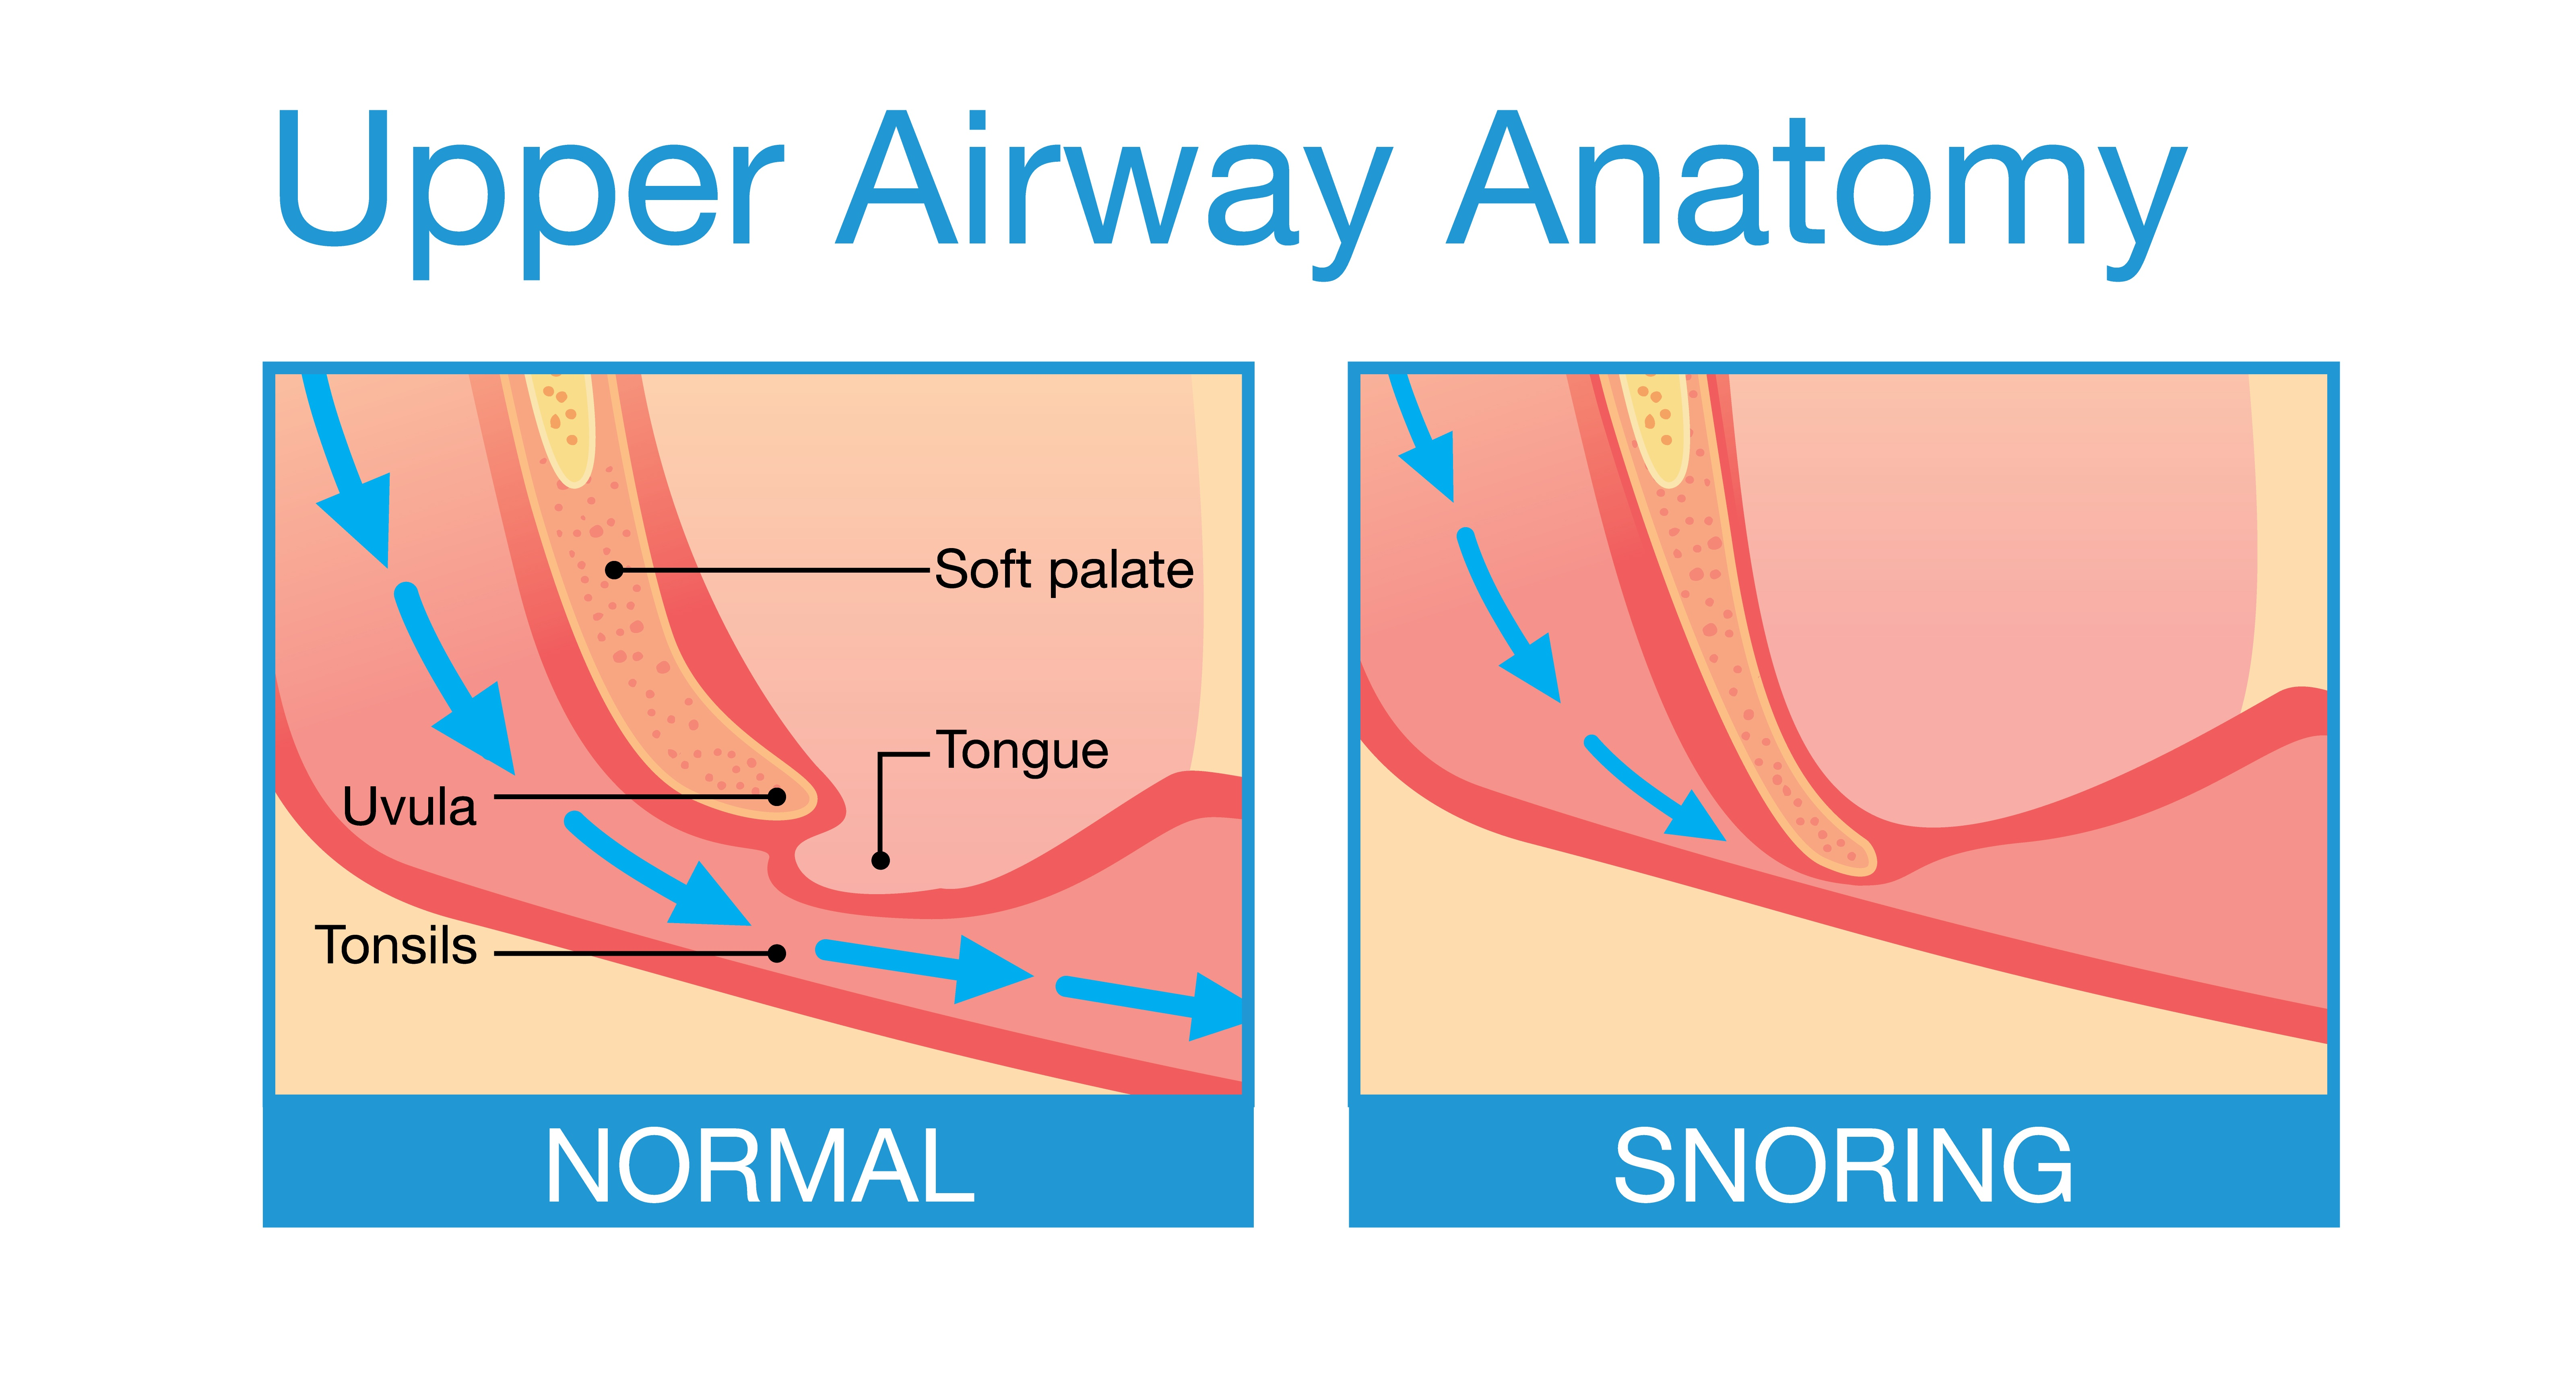 Snoring occurs when tissues in the upper airway vibrate with the airflow caused by breathing